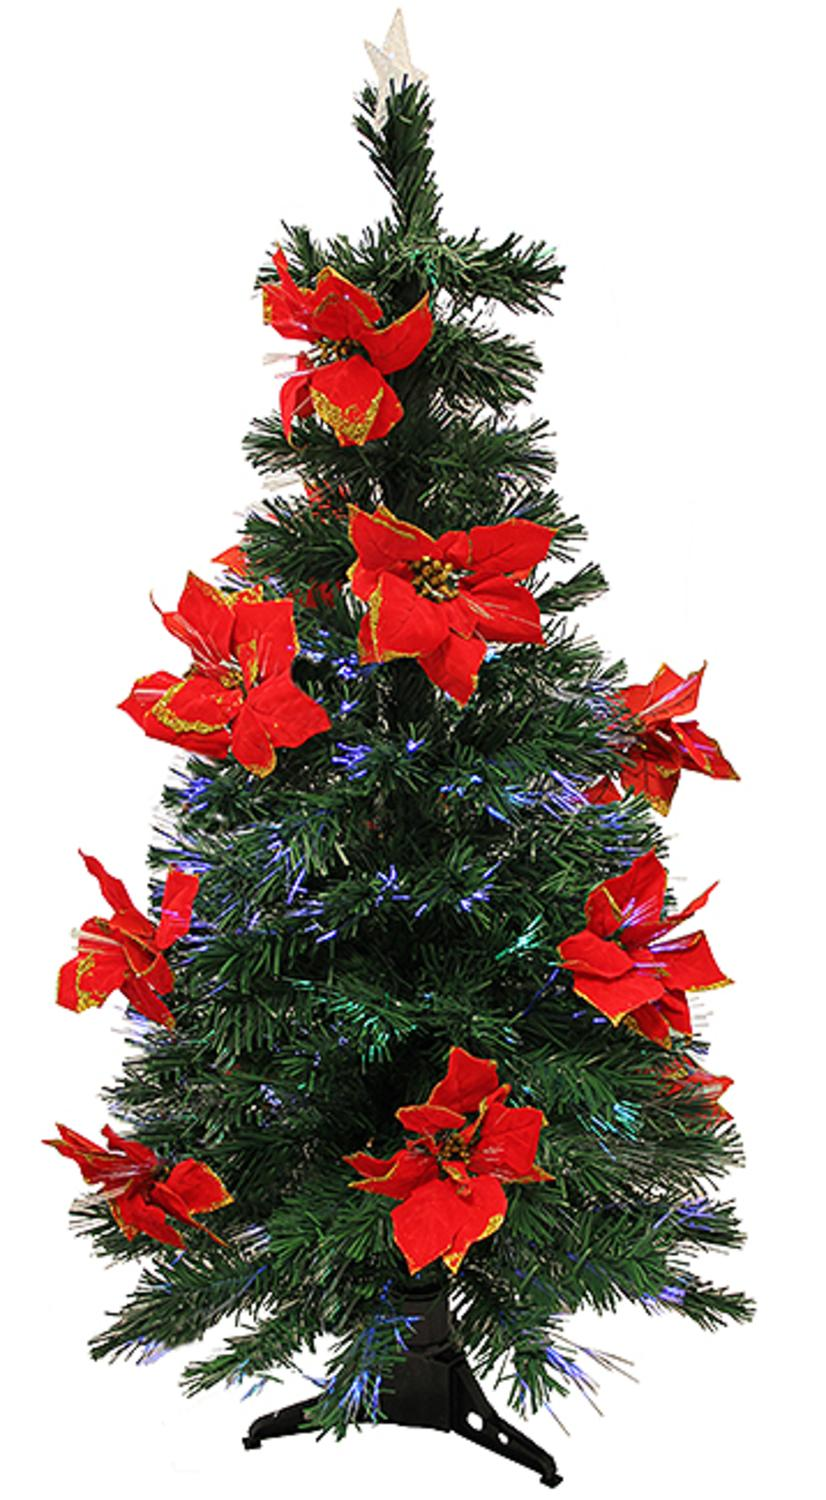 3' Pre-Lit Fiber Optic Artificial Christmas Tree with Red Poinsettias - Multi Dak Gd-47090